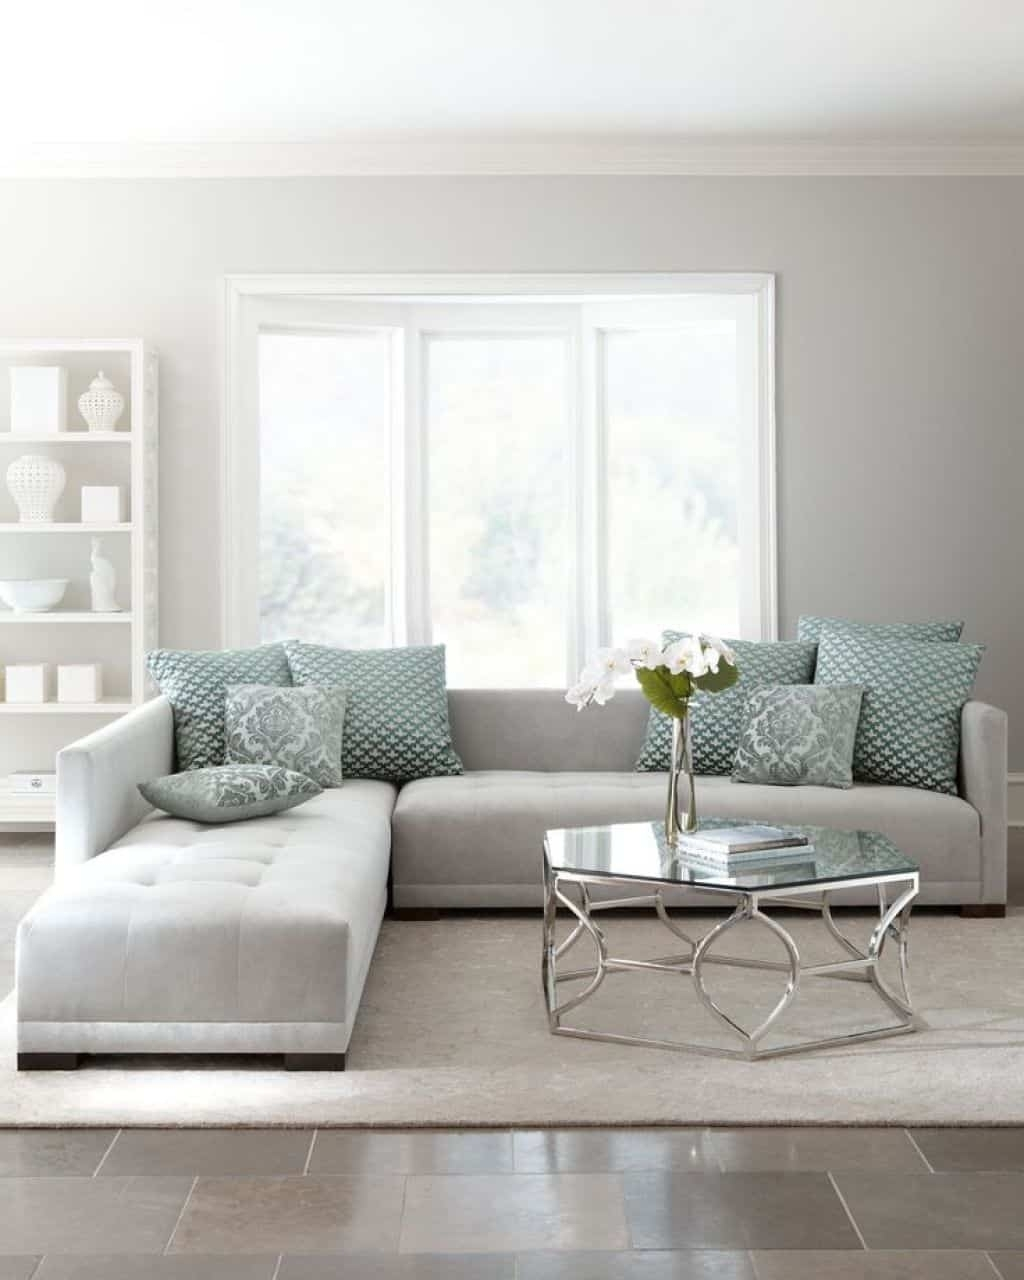 Living Room With Light Grey Sectional Sofa – Ways To Move A With Regard To Light Grey Sectional Sofas (View 6 of 10)